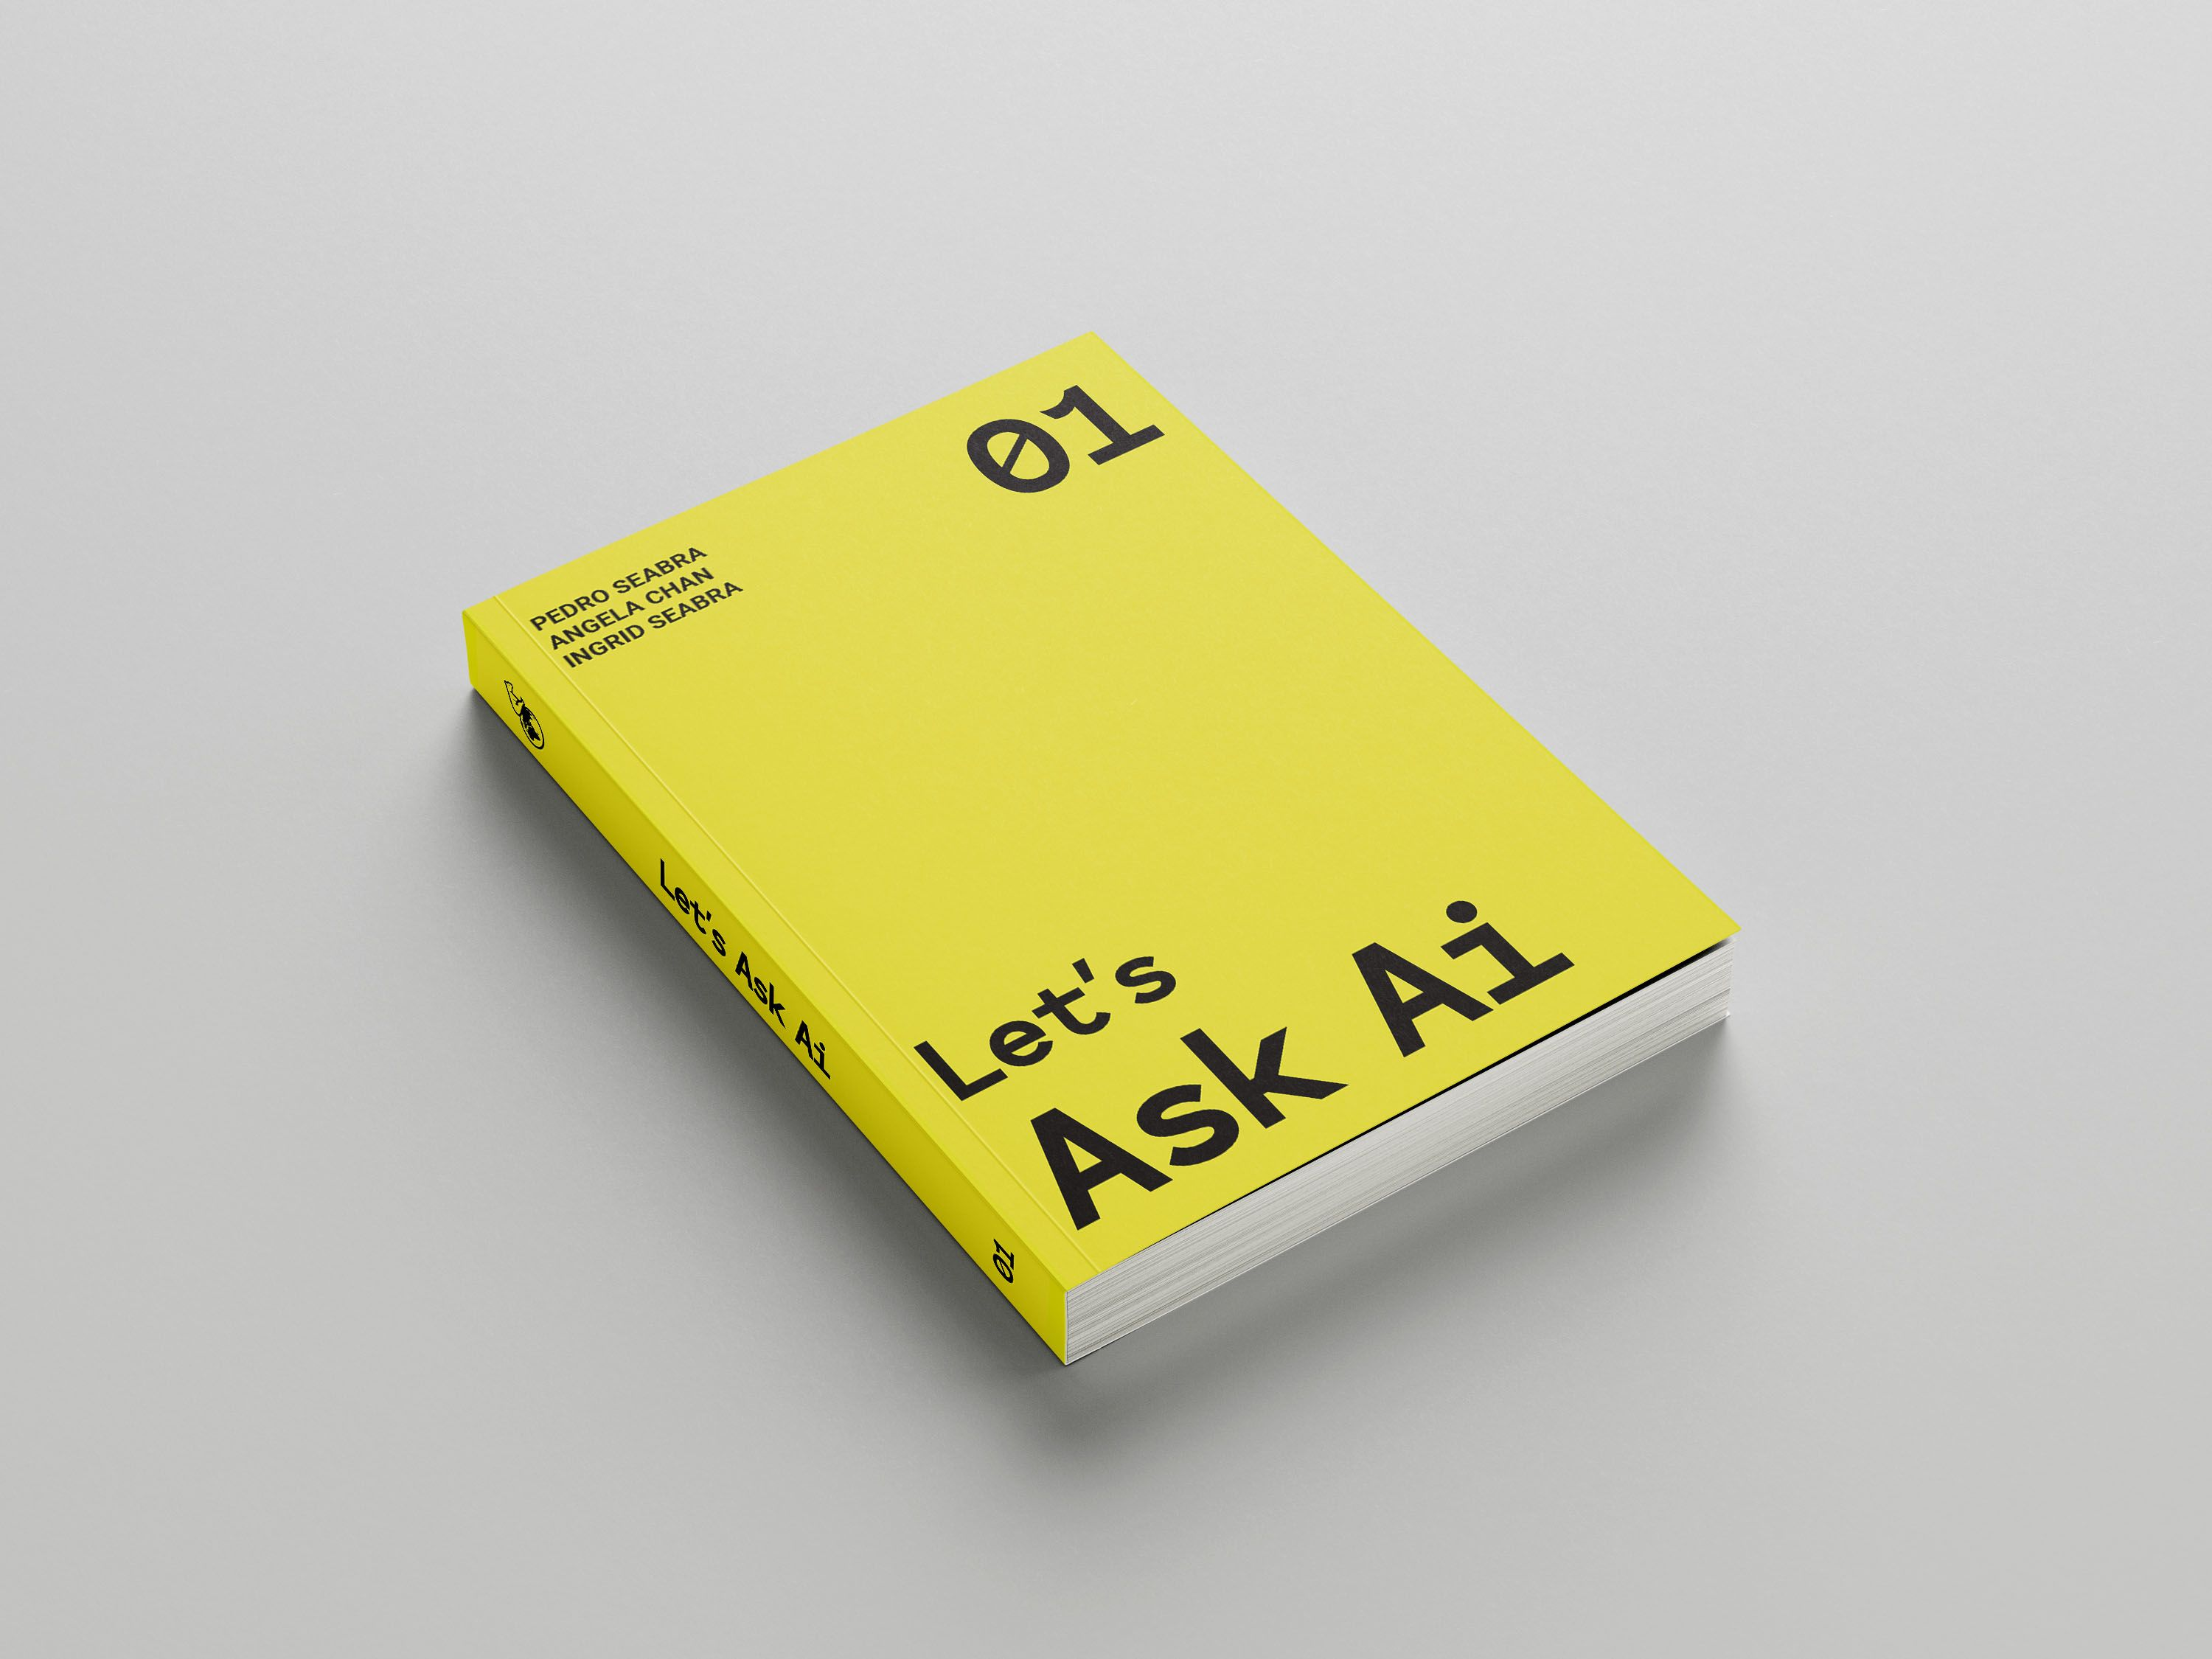 Nonsuch Media Announces Launch of New Book, 'Let's Ask AI', by Ingrid Seabra, Angela Chan, and Pedro Seabra